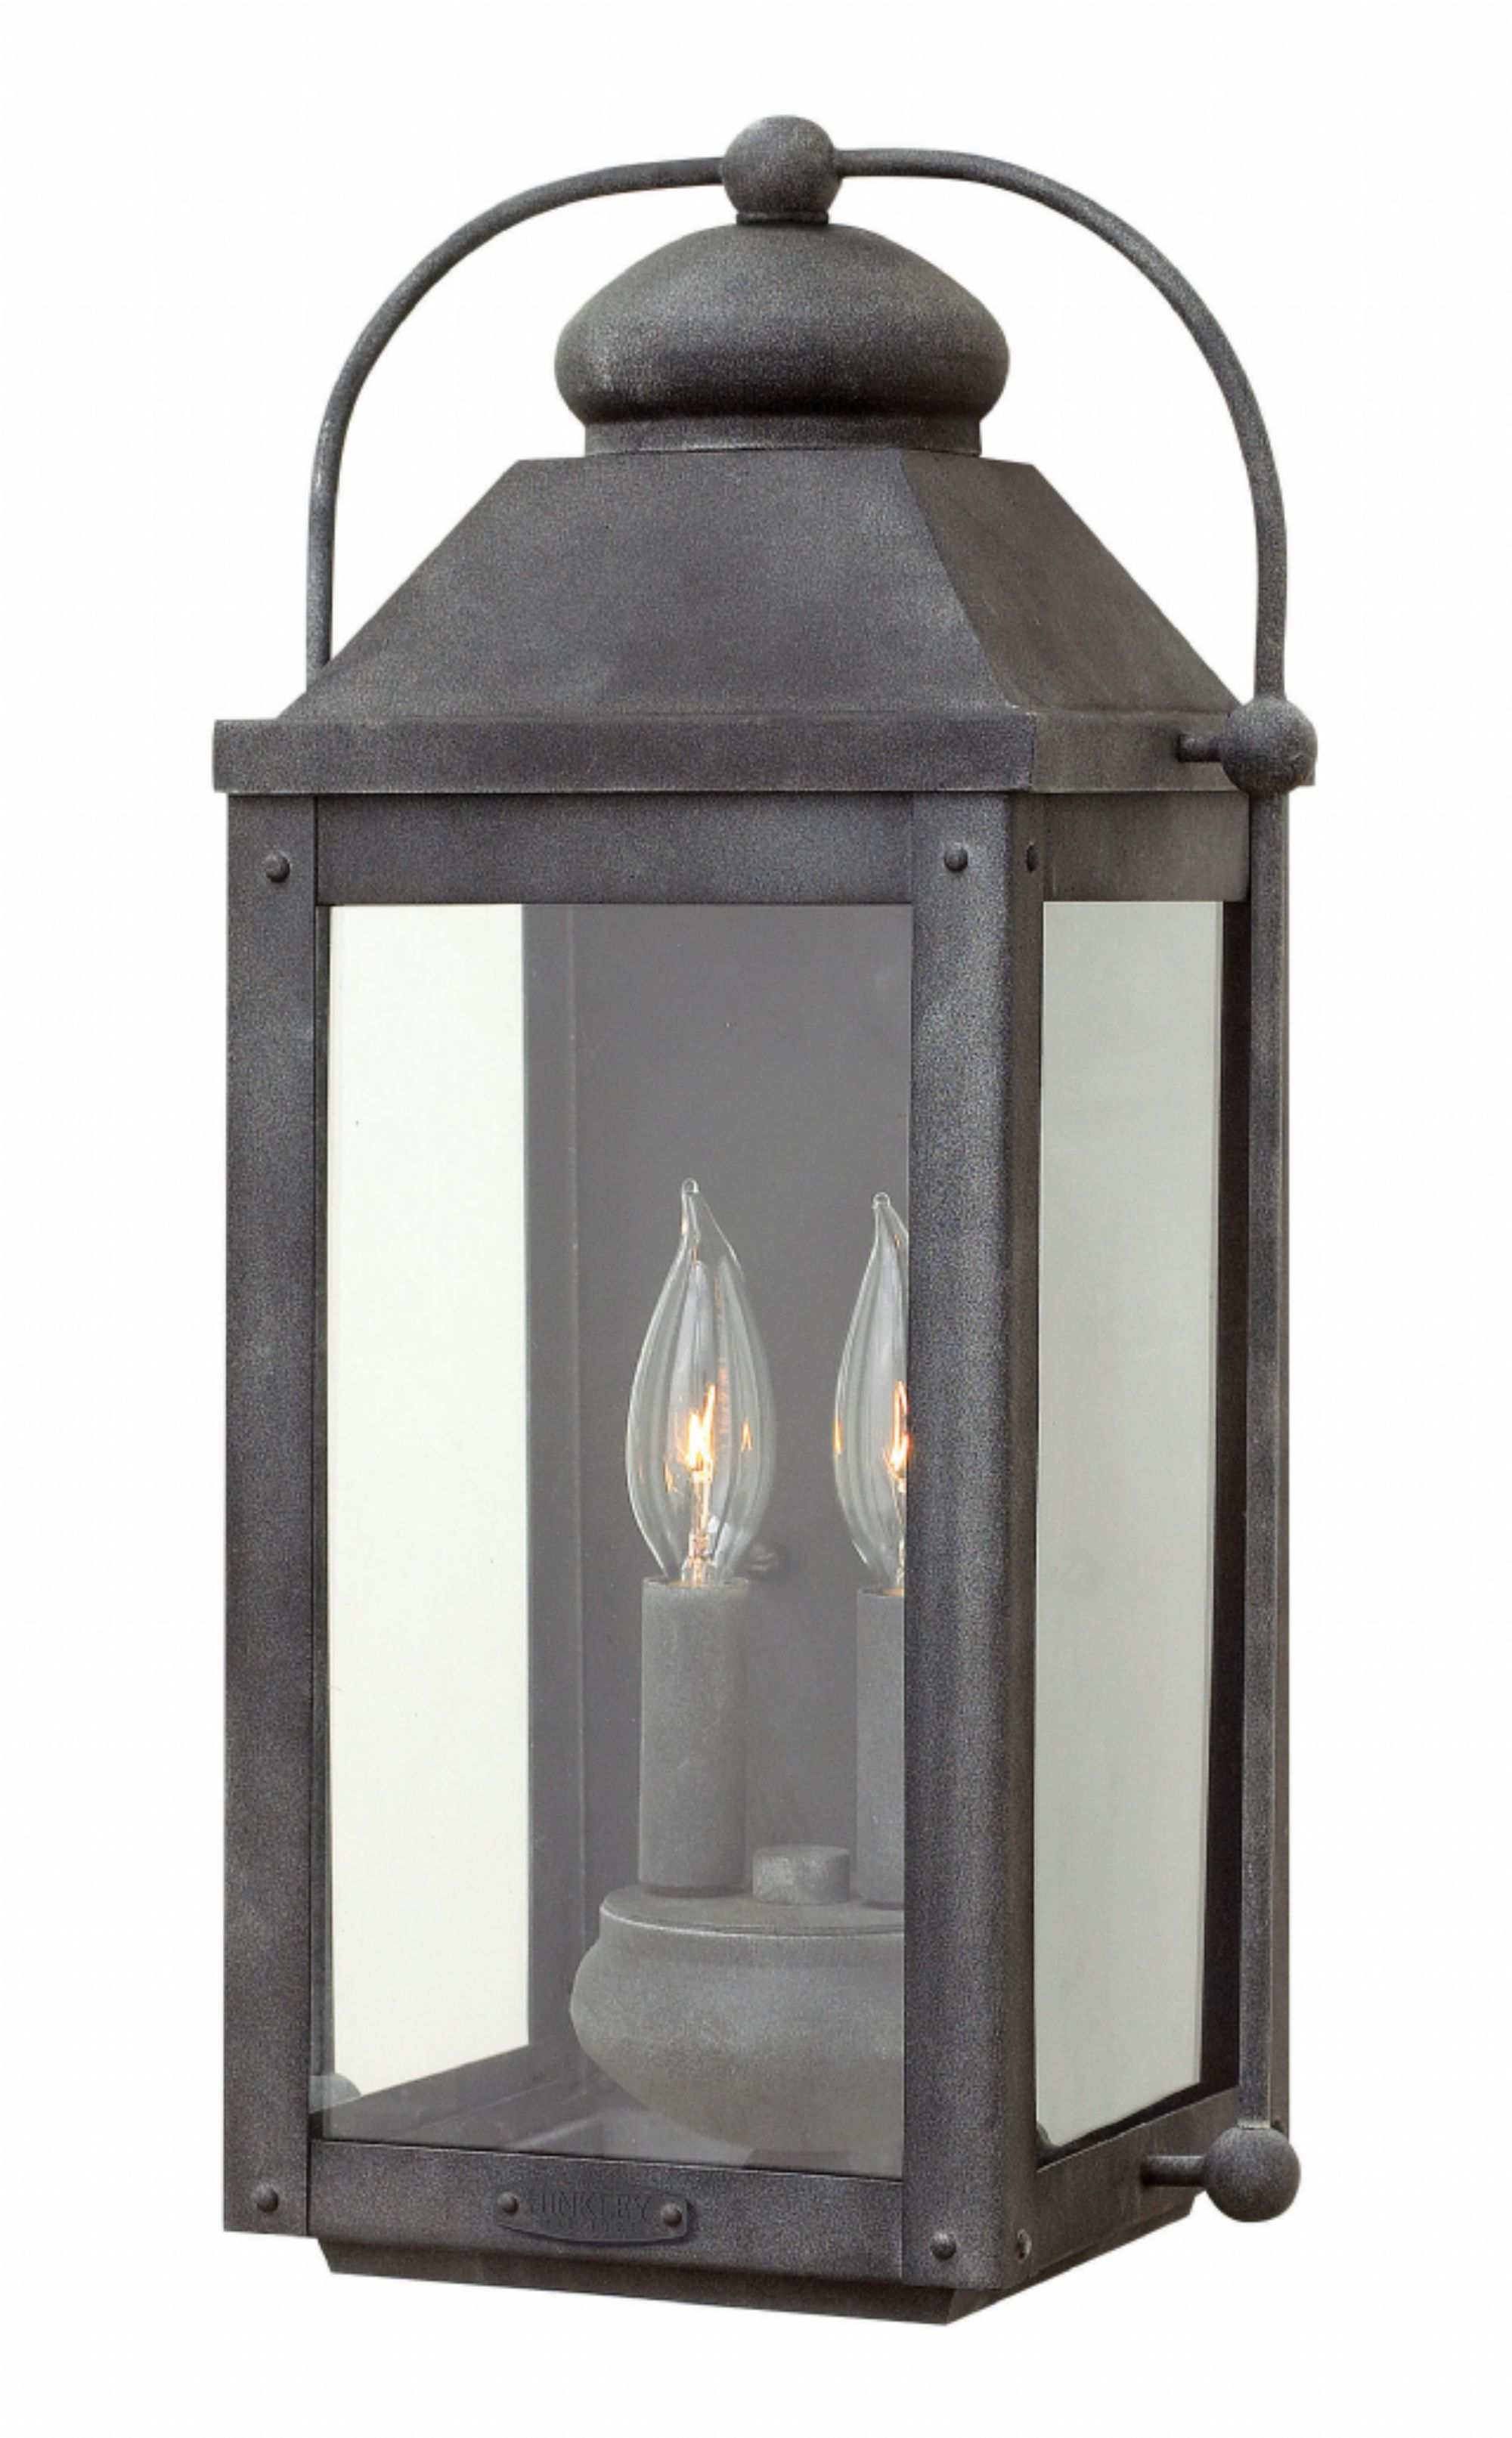 Outdoor Wall Lantern Lights Simple Indoor Wall Light Fixtures  Lantern Light Fixture Hinkley Lighting Inspiration Design